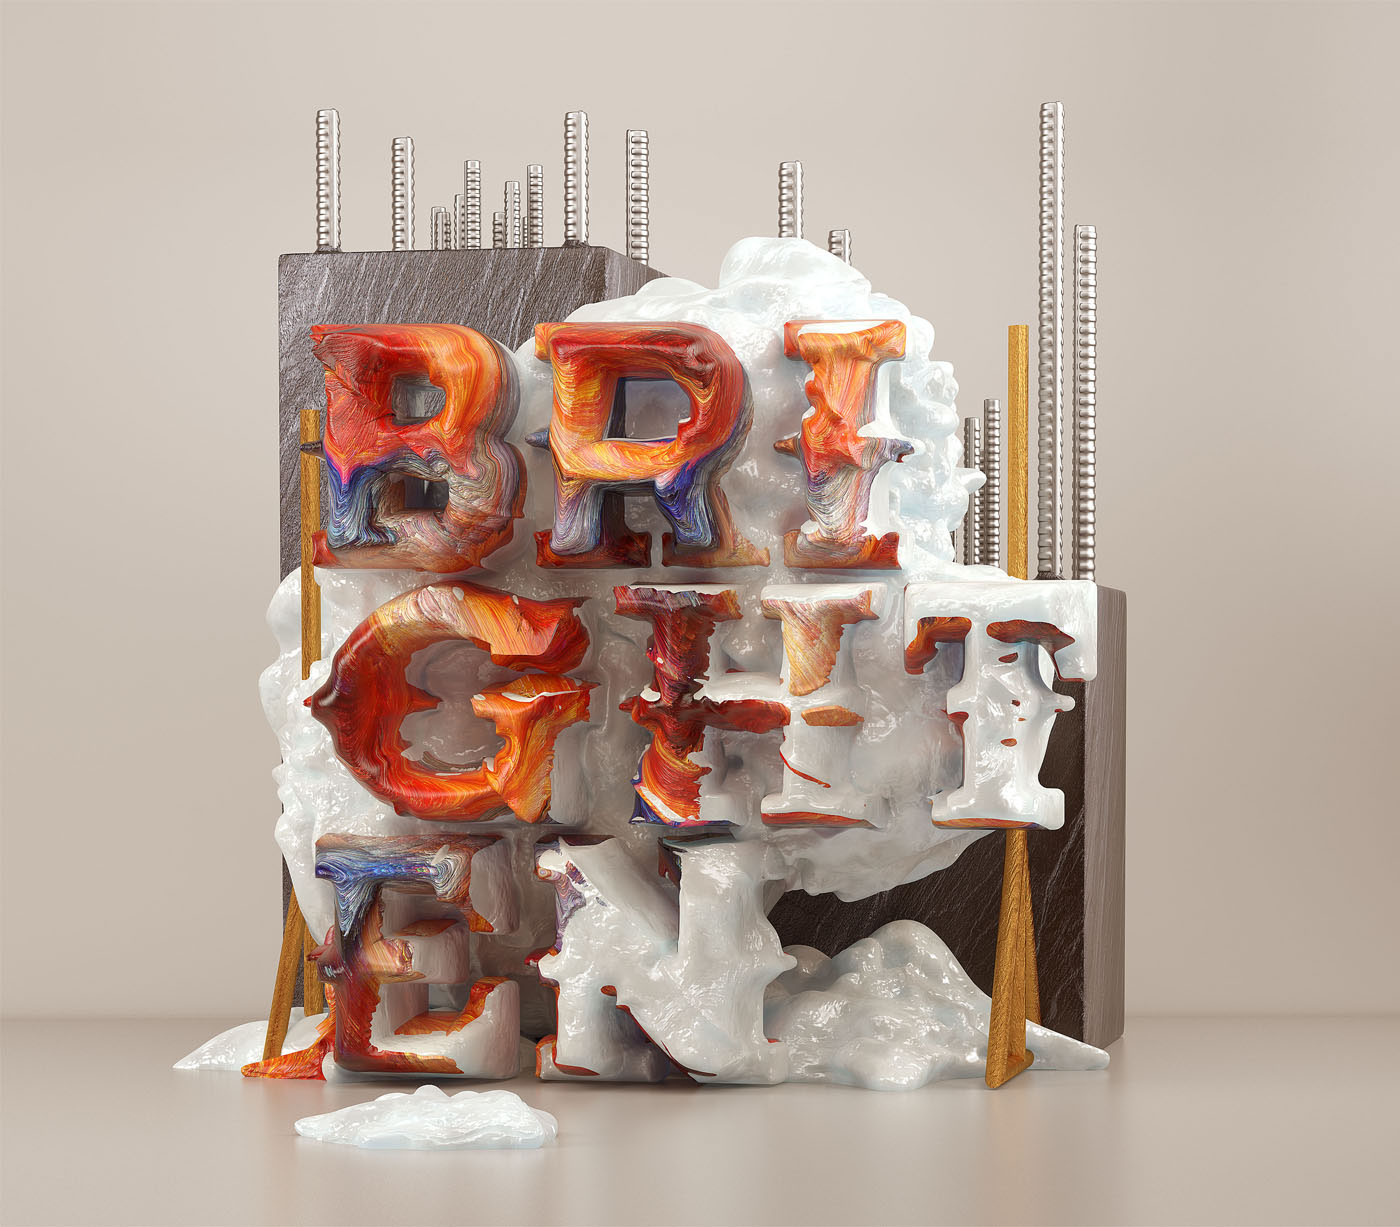 3d typography design brighten